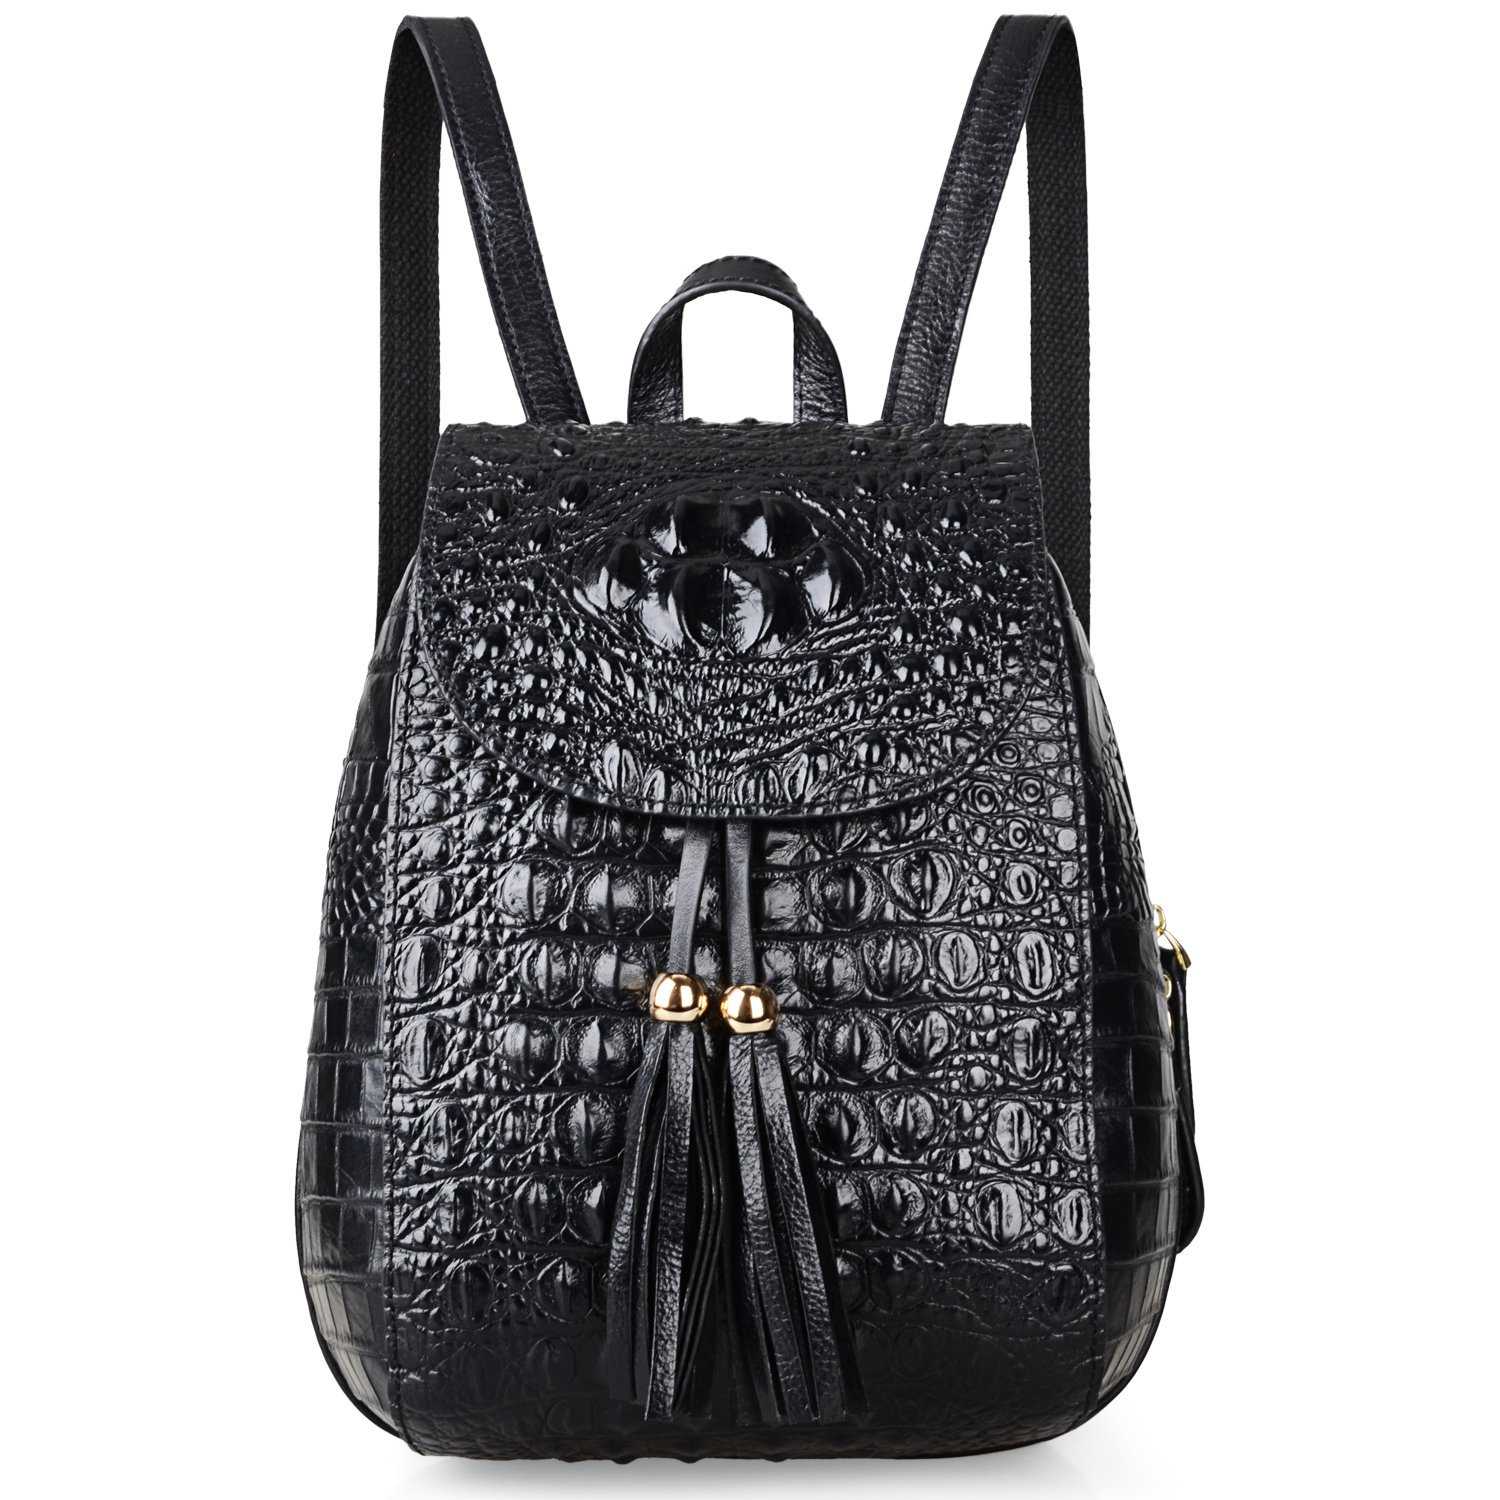 bae58be04b0 Amazon.com  PIJUSHI Leather Backpack For Women Crocodile Bags Fashion Casual  Backpack Purses (B66810 Black)  Shoes